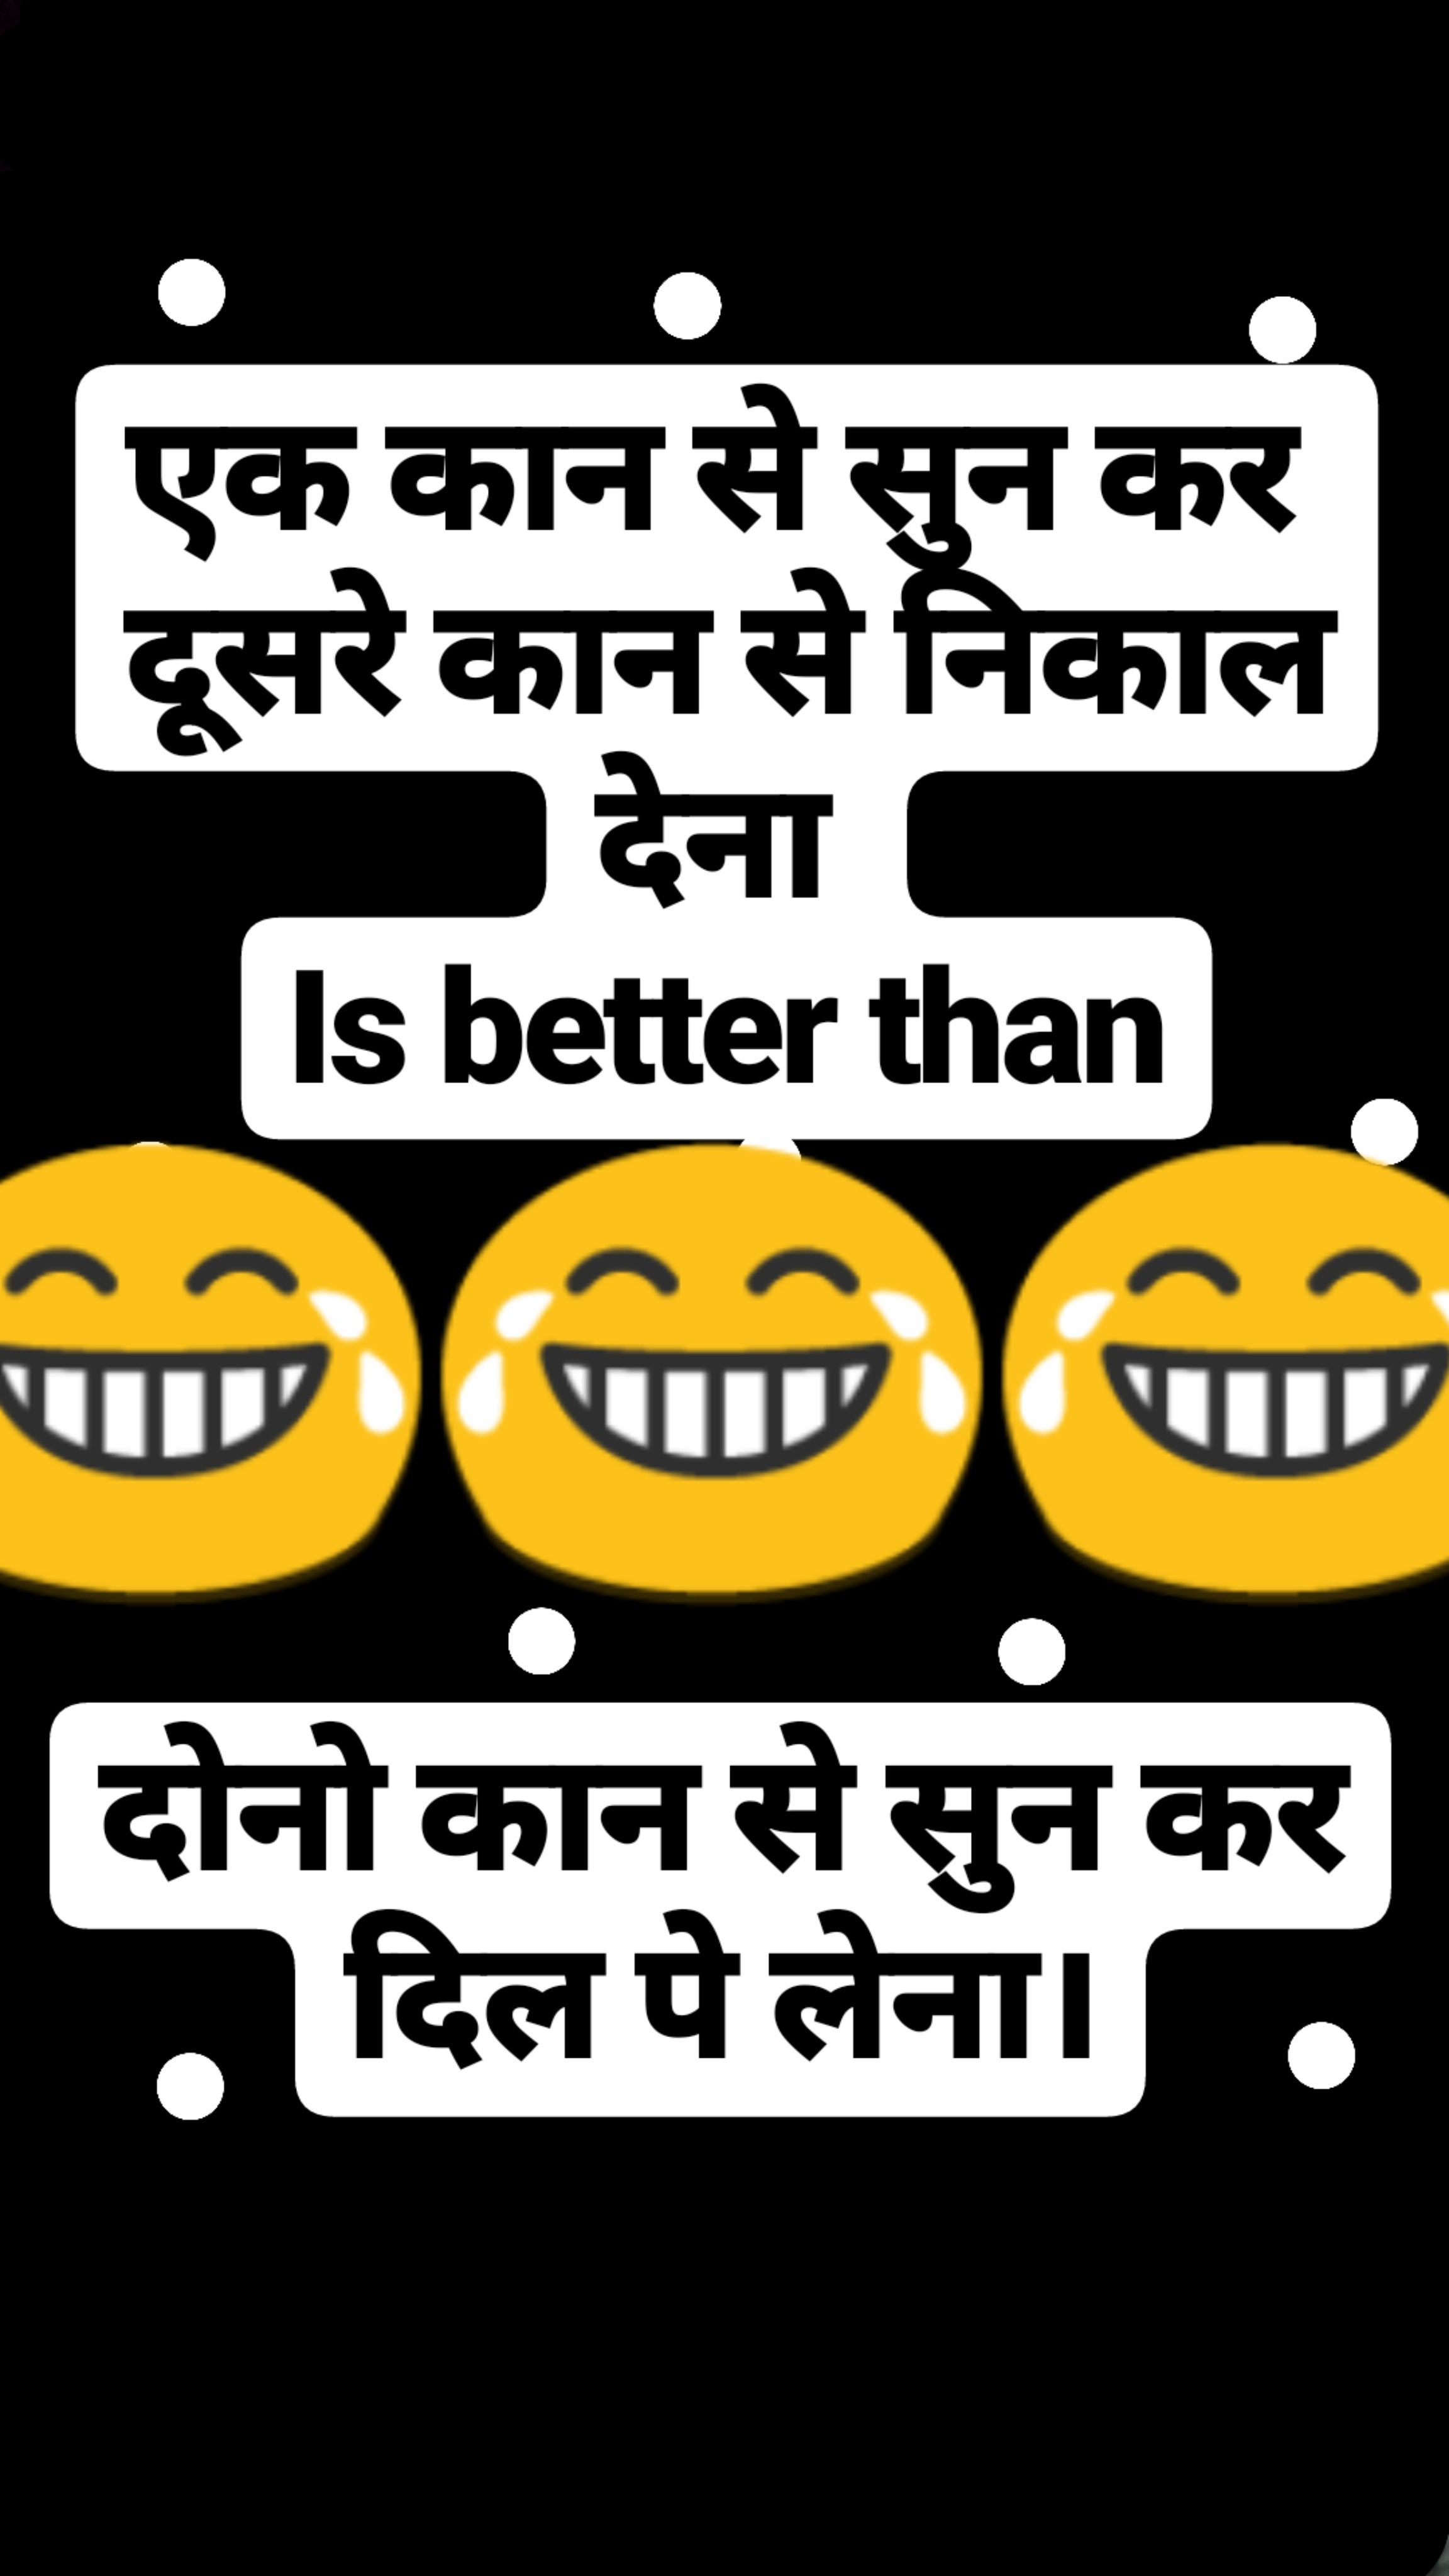 Pin By Nikhil Pasi On Quotes Funny Attitude Quotes Jokes Quotes Funky Quotes